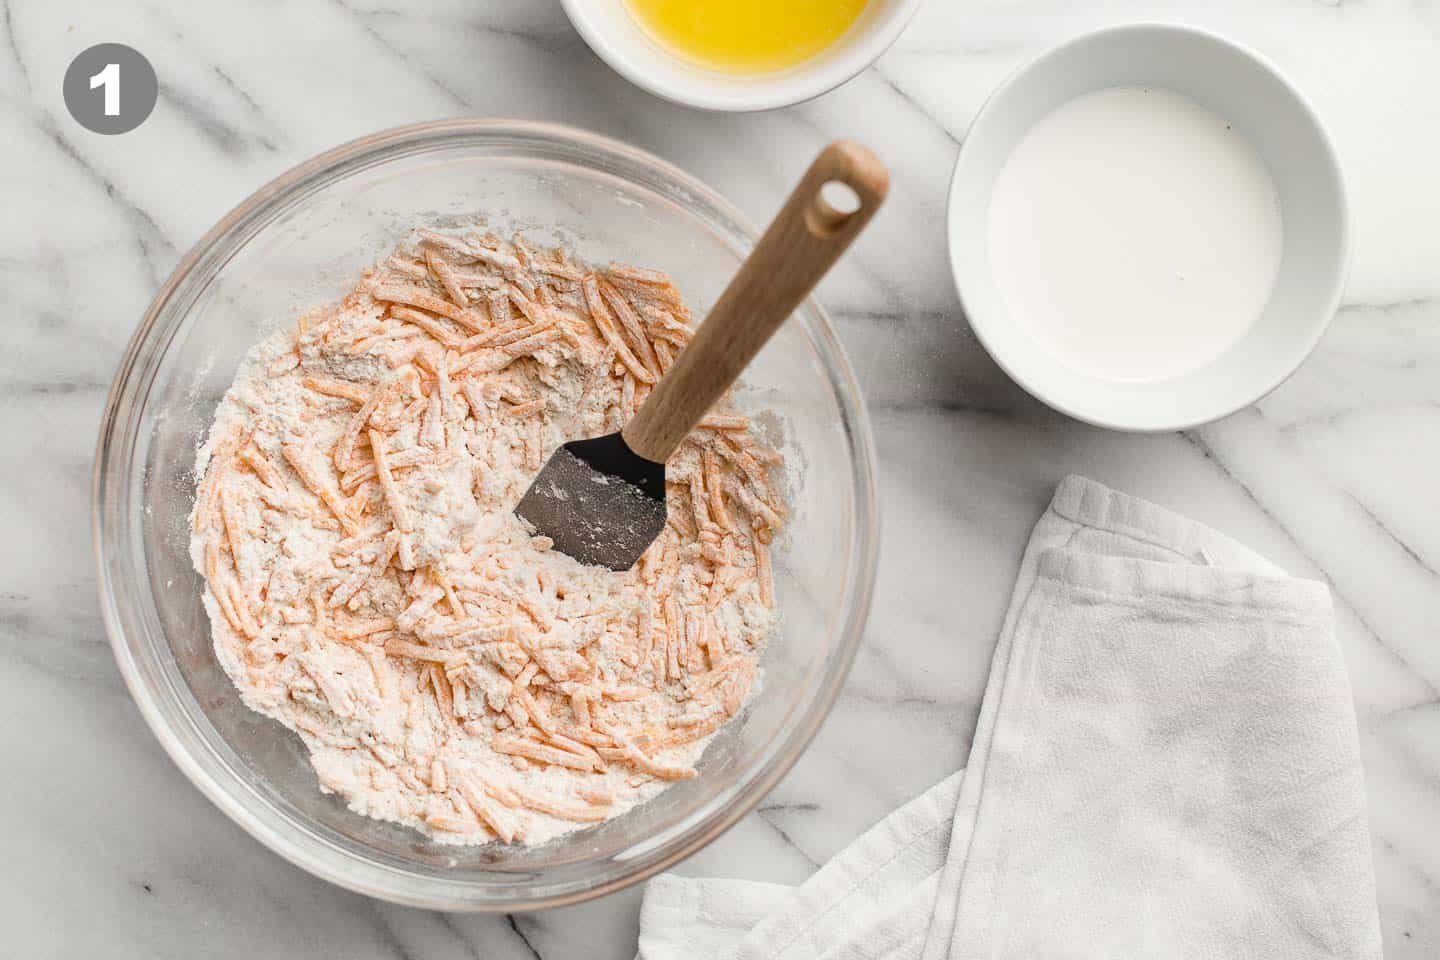 Dry ingredients mixed together in a bowl.